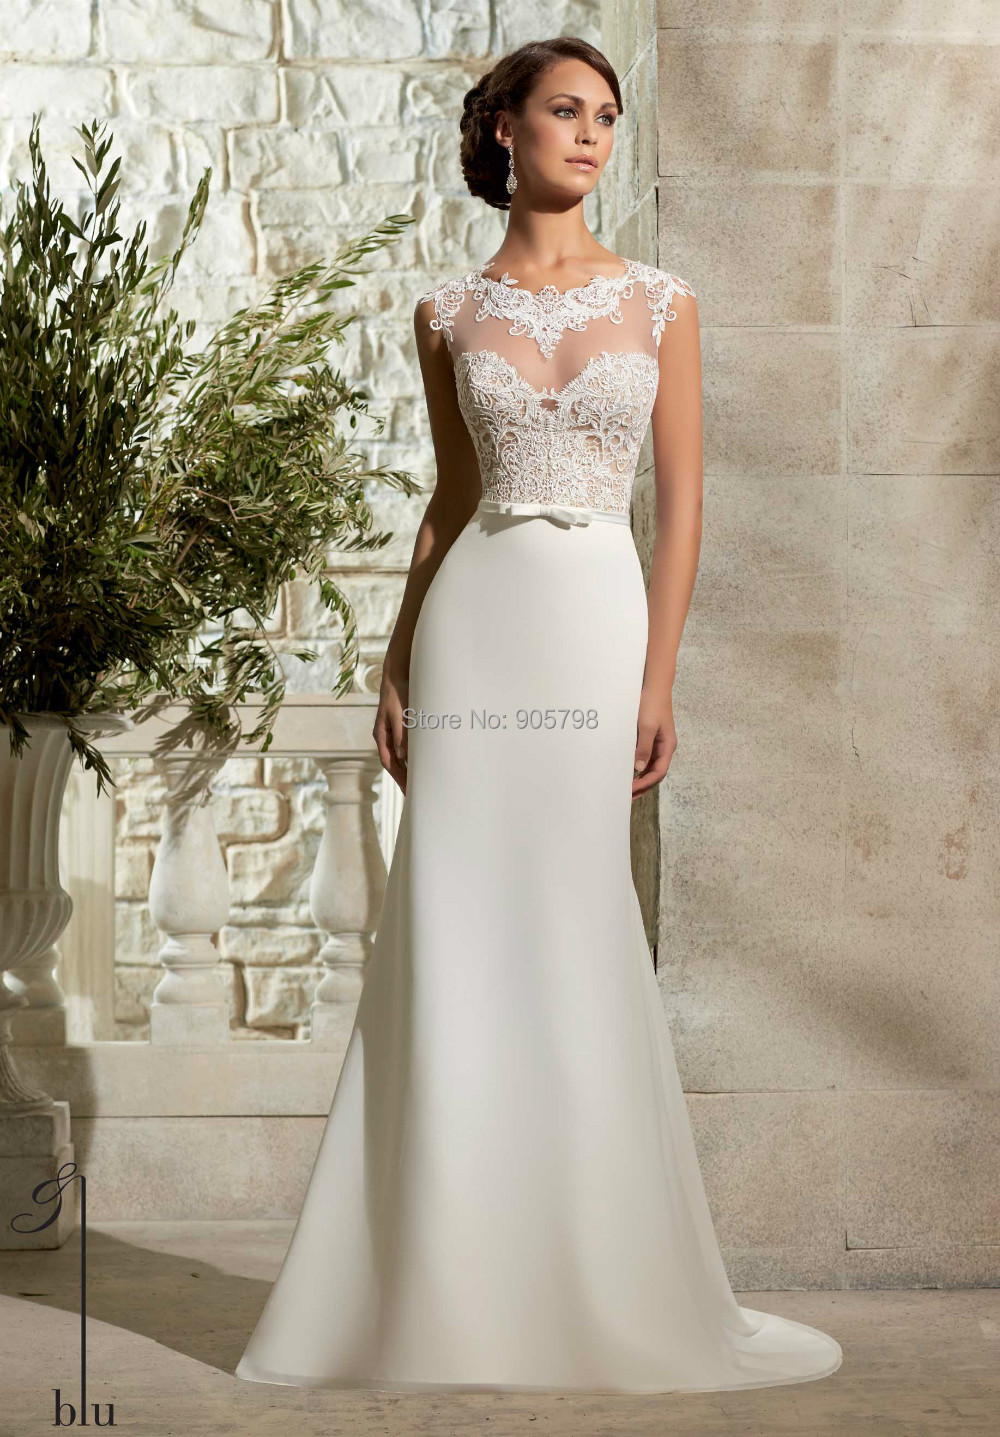 See through Bodice Wedding Dresses | Dress images